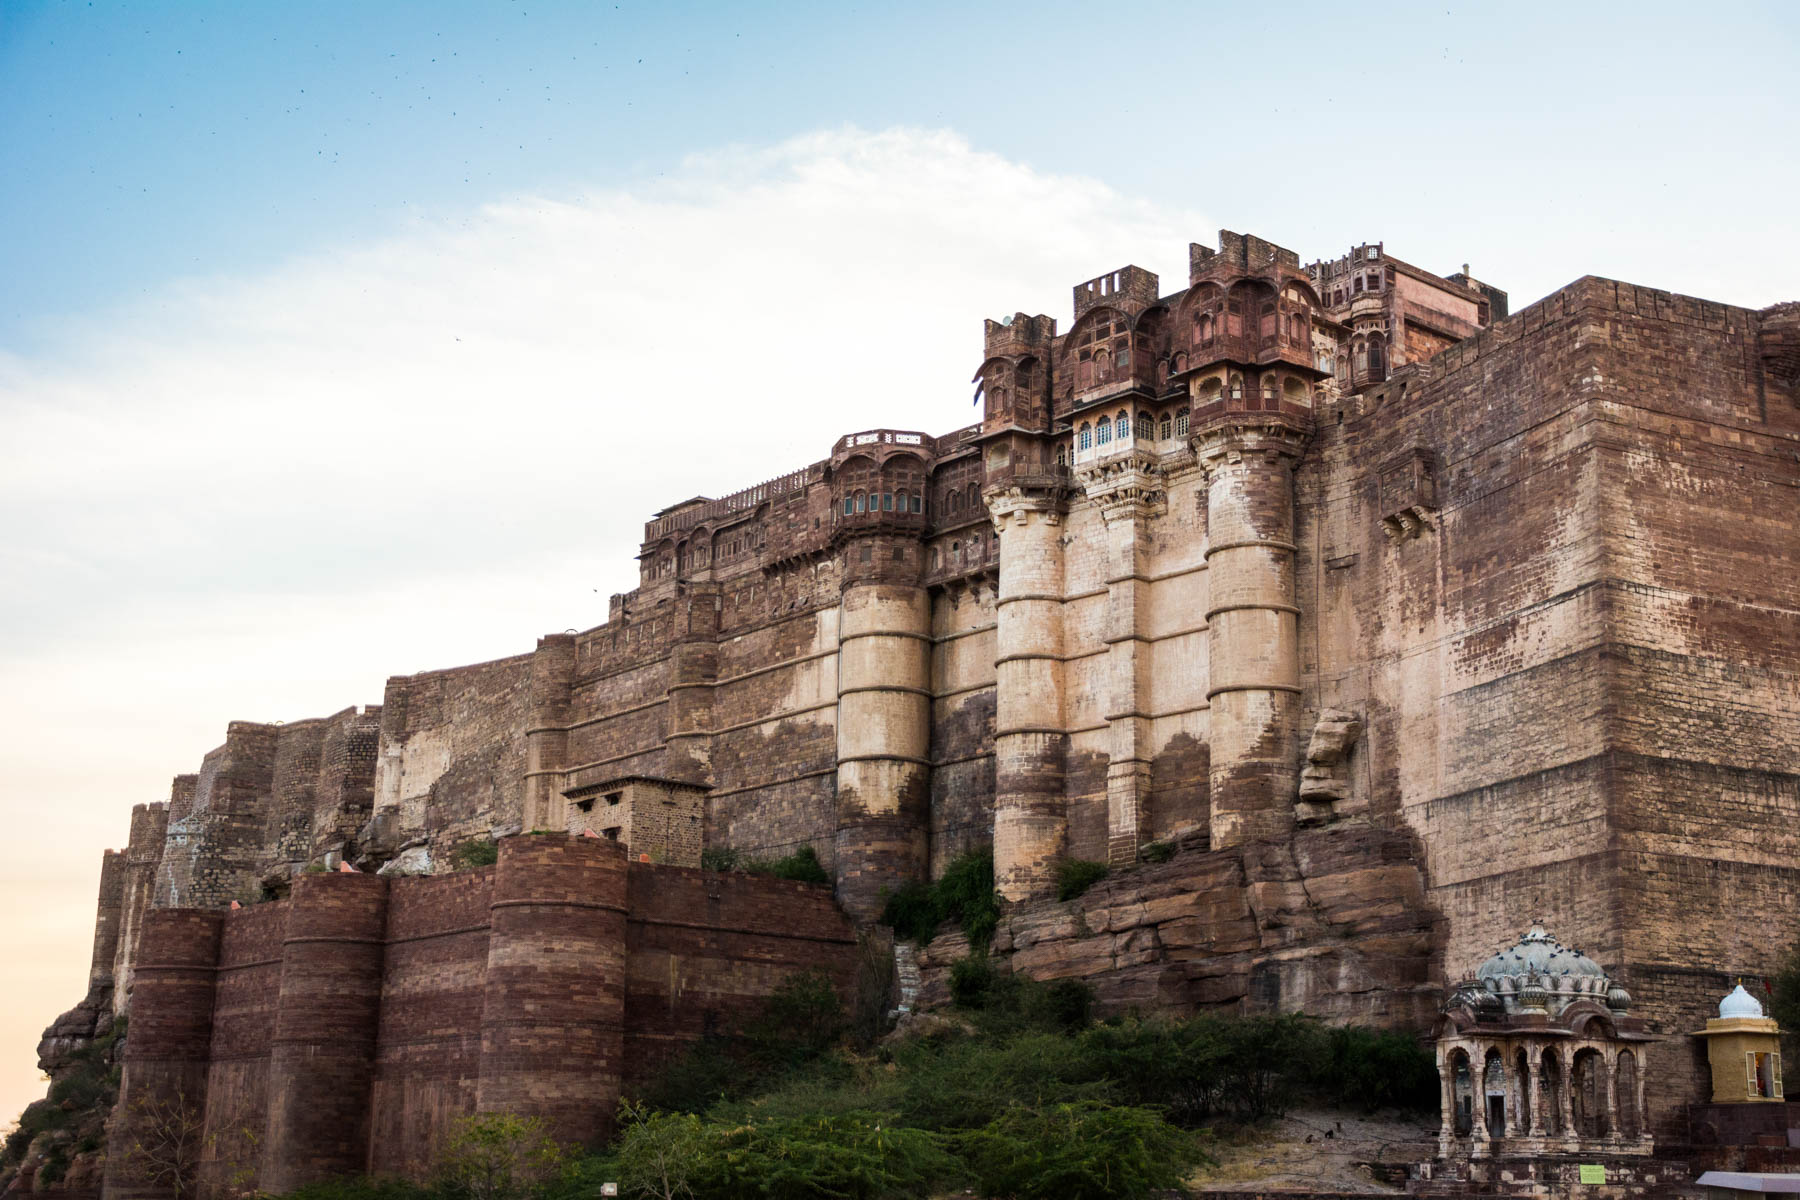 Photo essay about the streets and people of the Blue City of Jodhpur, Rajasthan, India - Mehrangarh fort over the city - Lost With Purpose